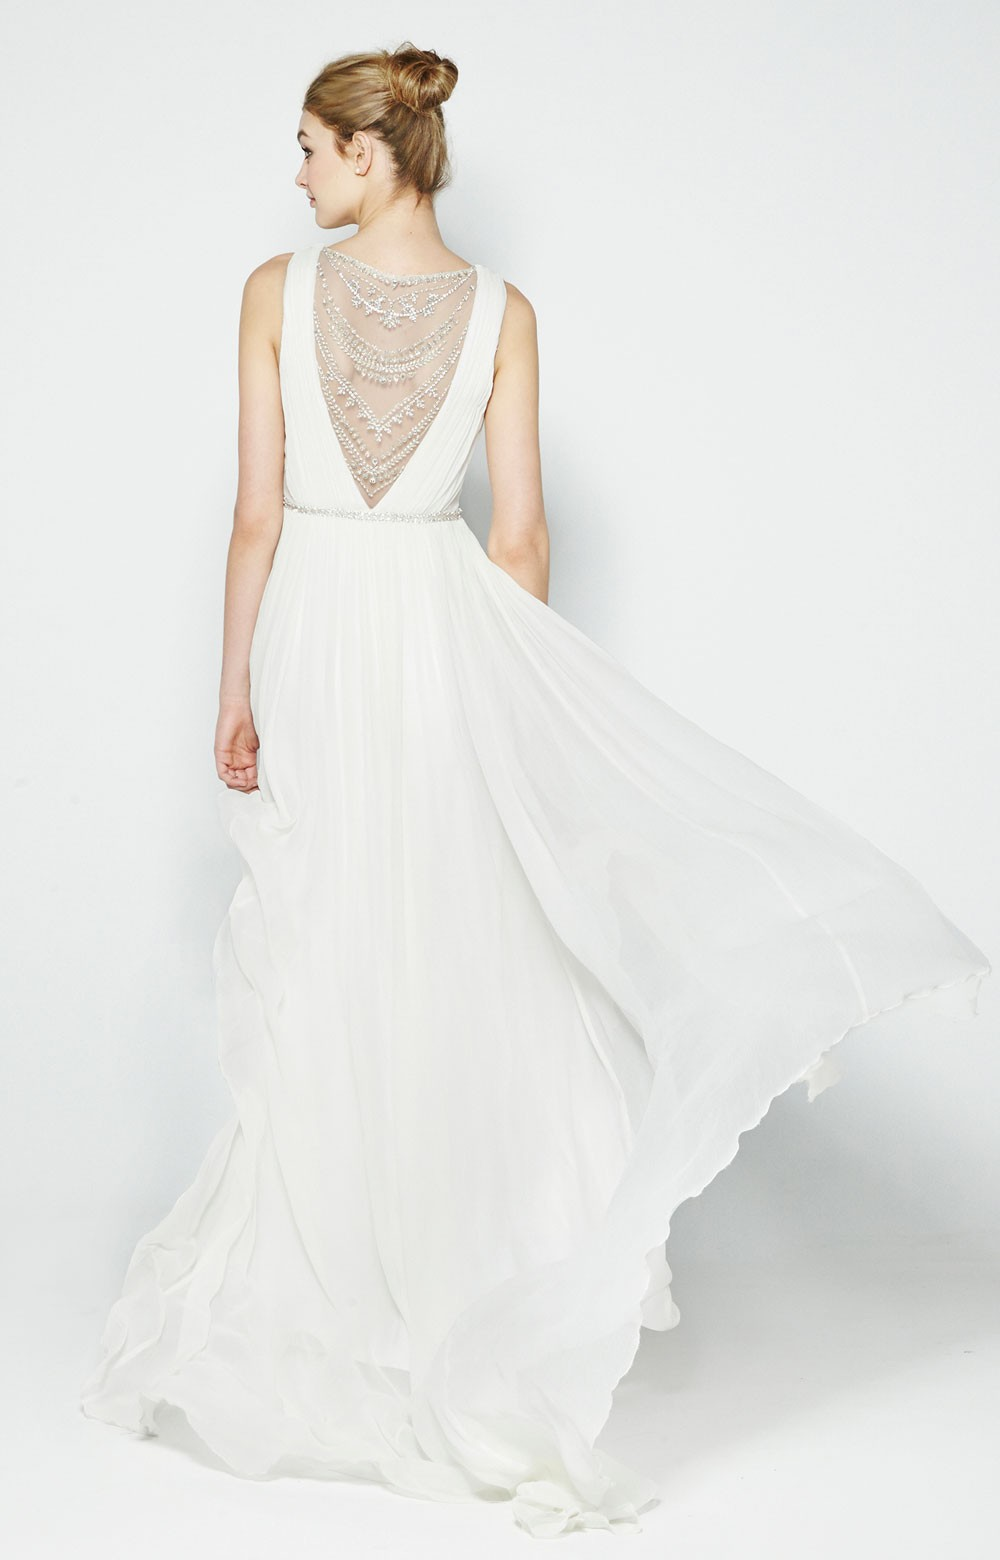 Millie Crinkle Silk Chiffon Bridal Gown by Nicole Miller